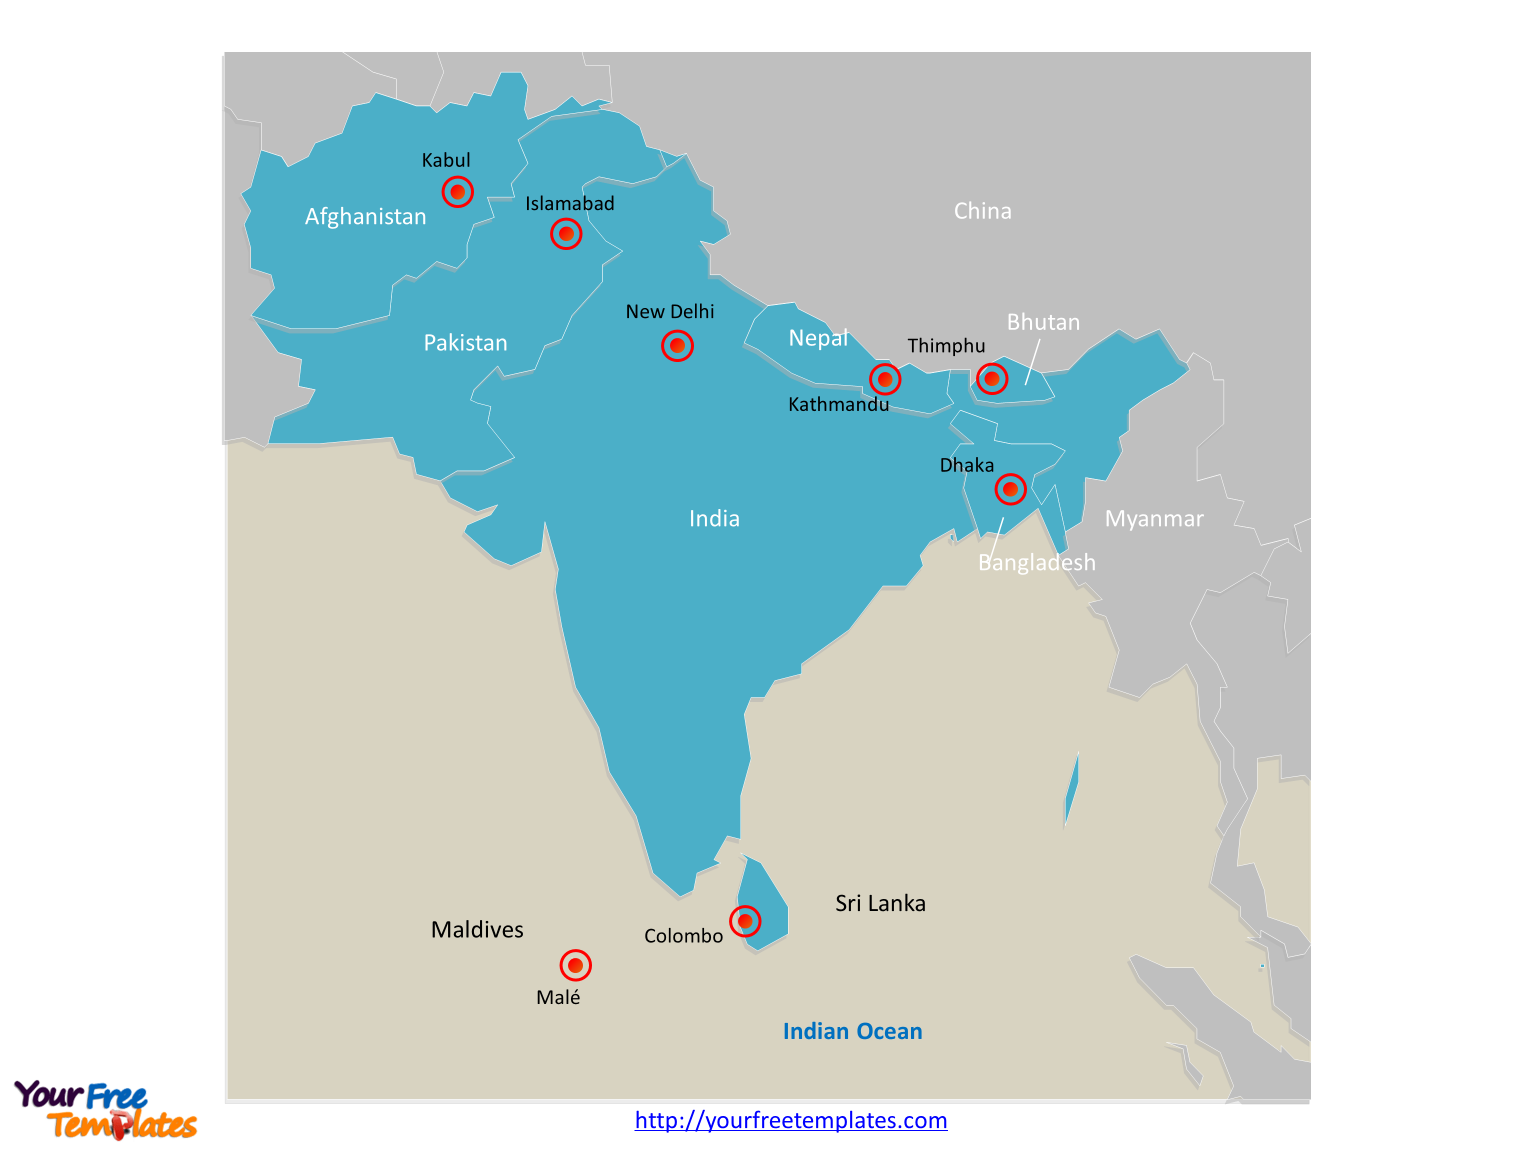 Map Of The South Asia.South Asia Map Free Templates Free Powerpoint Templates